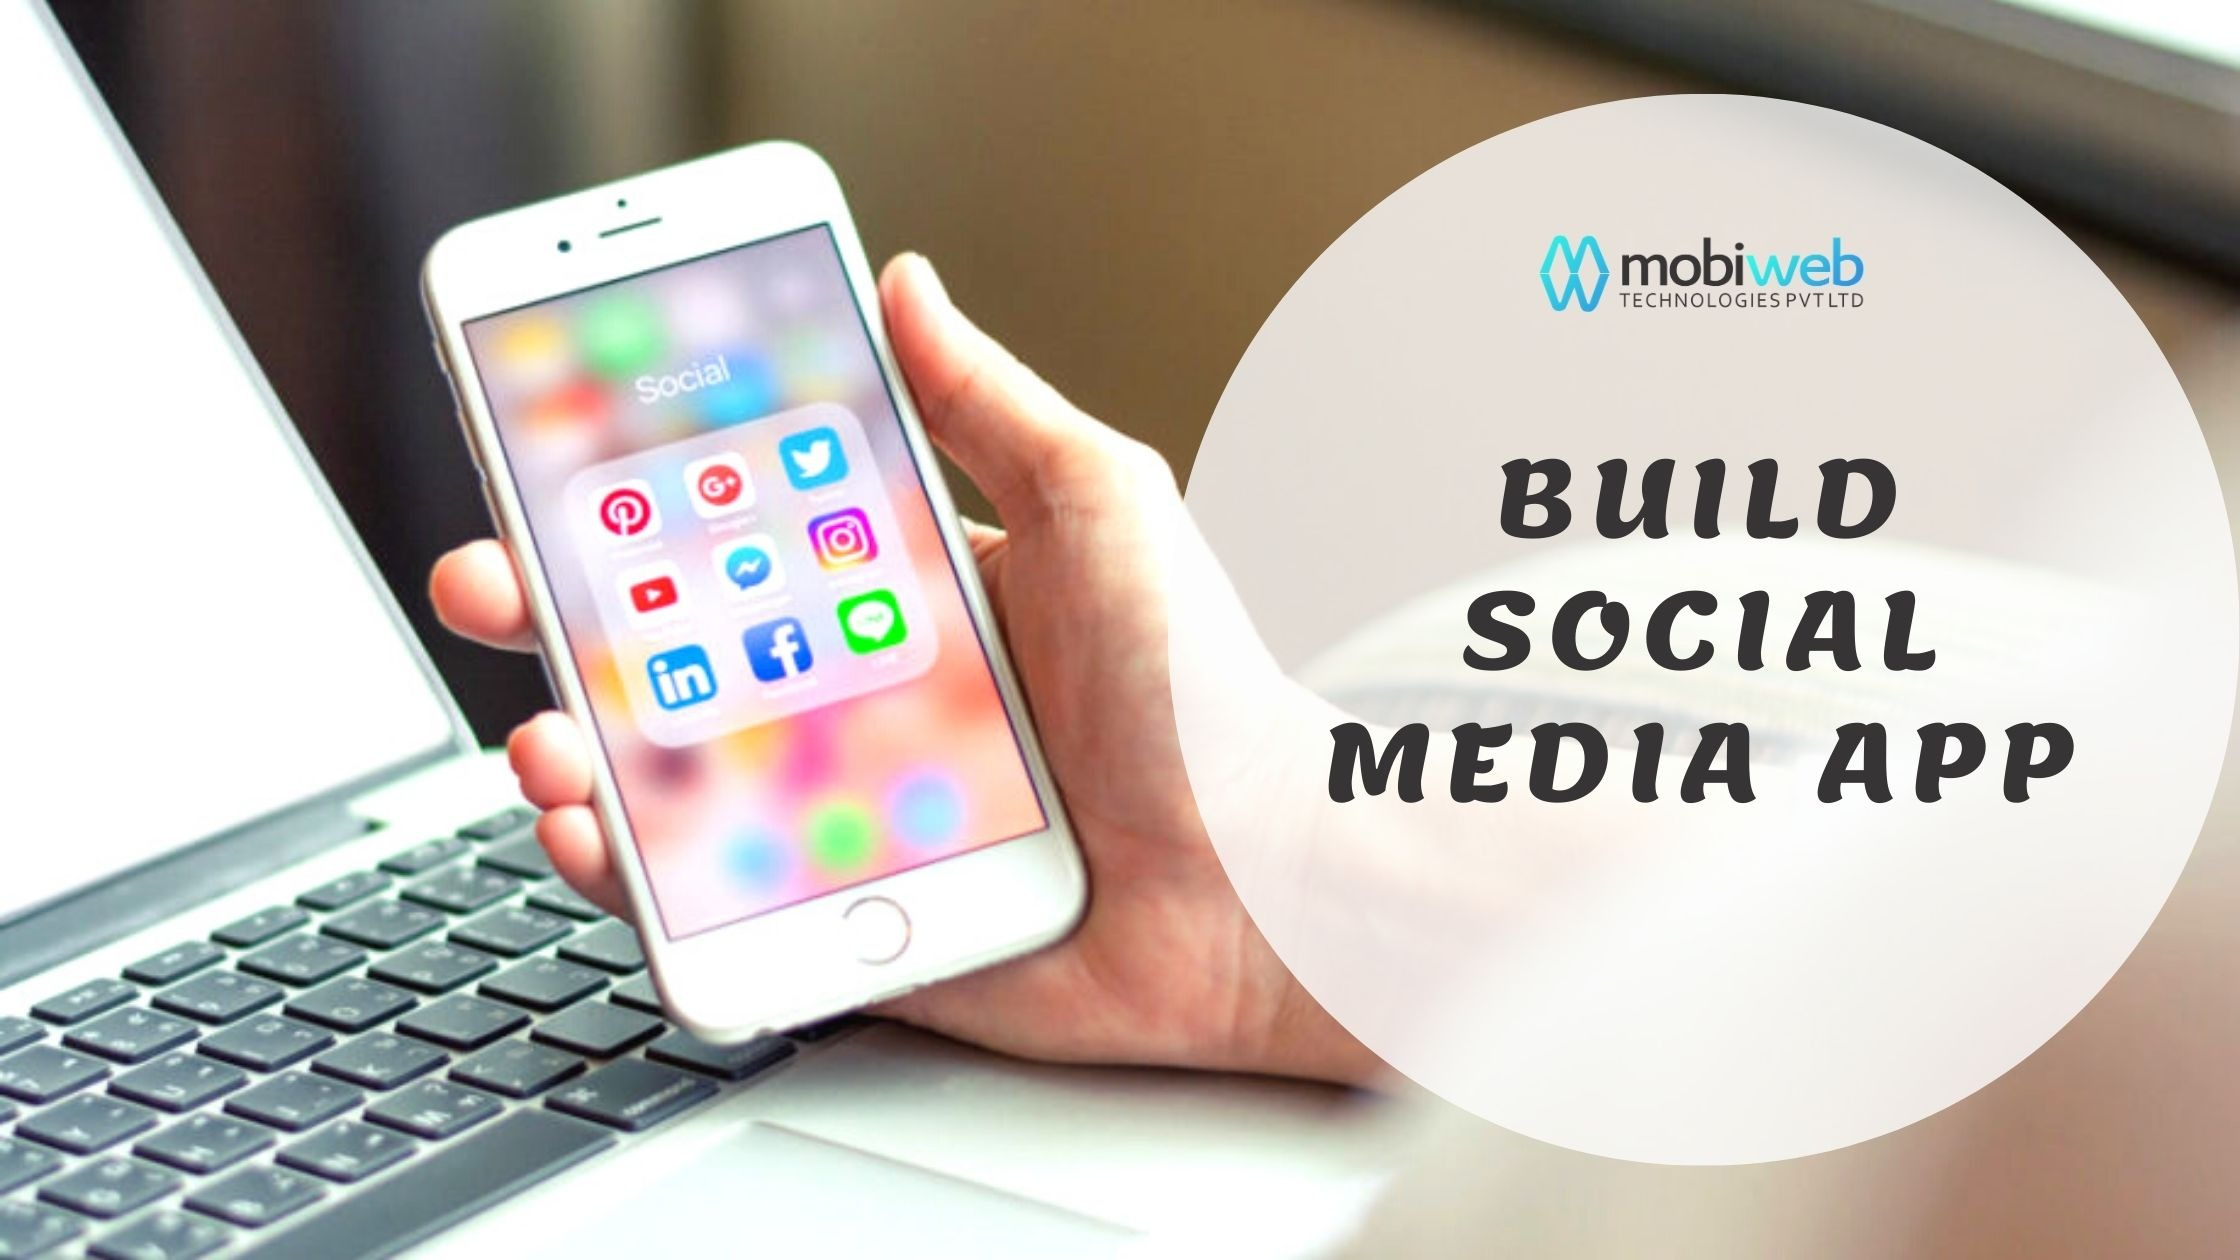 How to Build a Social Media App in 7 Steps?